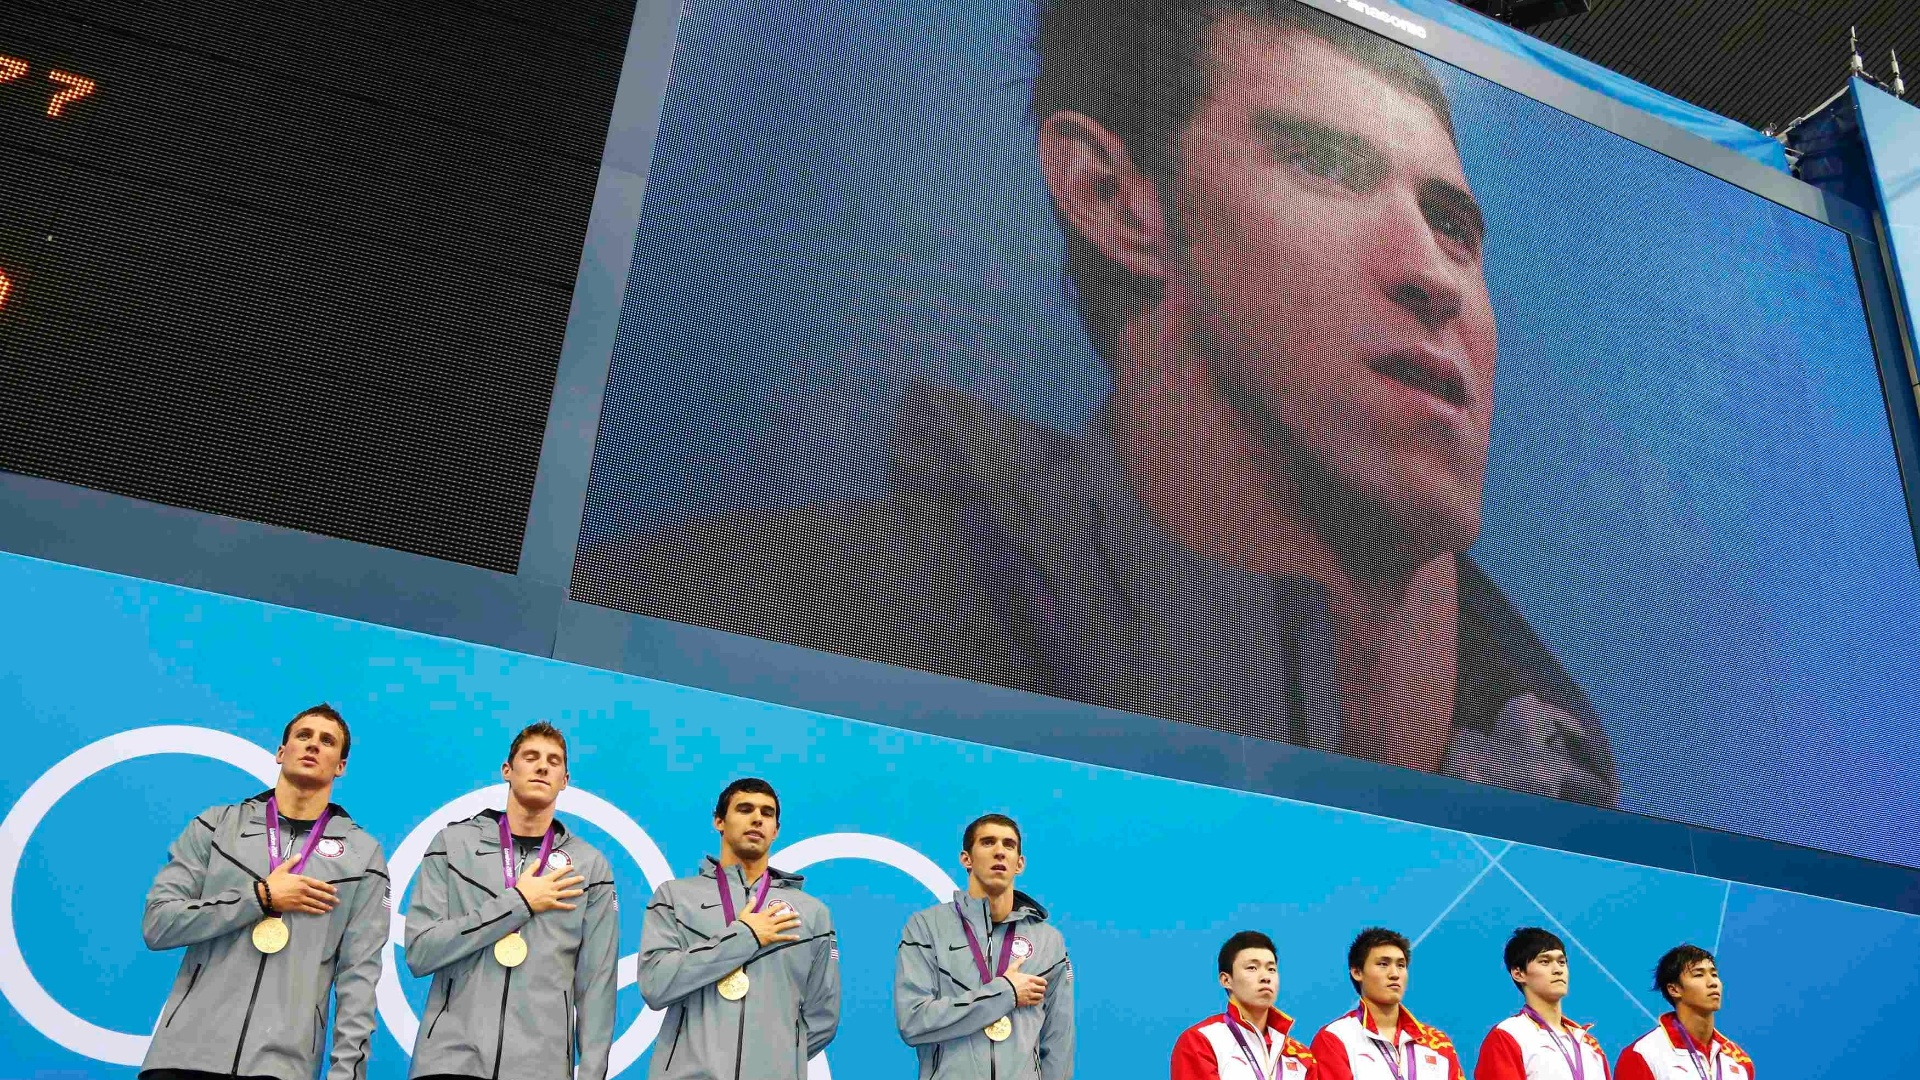 Equipe do 4x200 m livre no pdio. Ouro foi 19 medalha de Michael Phelps